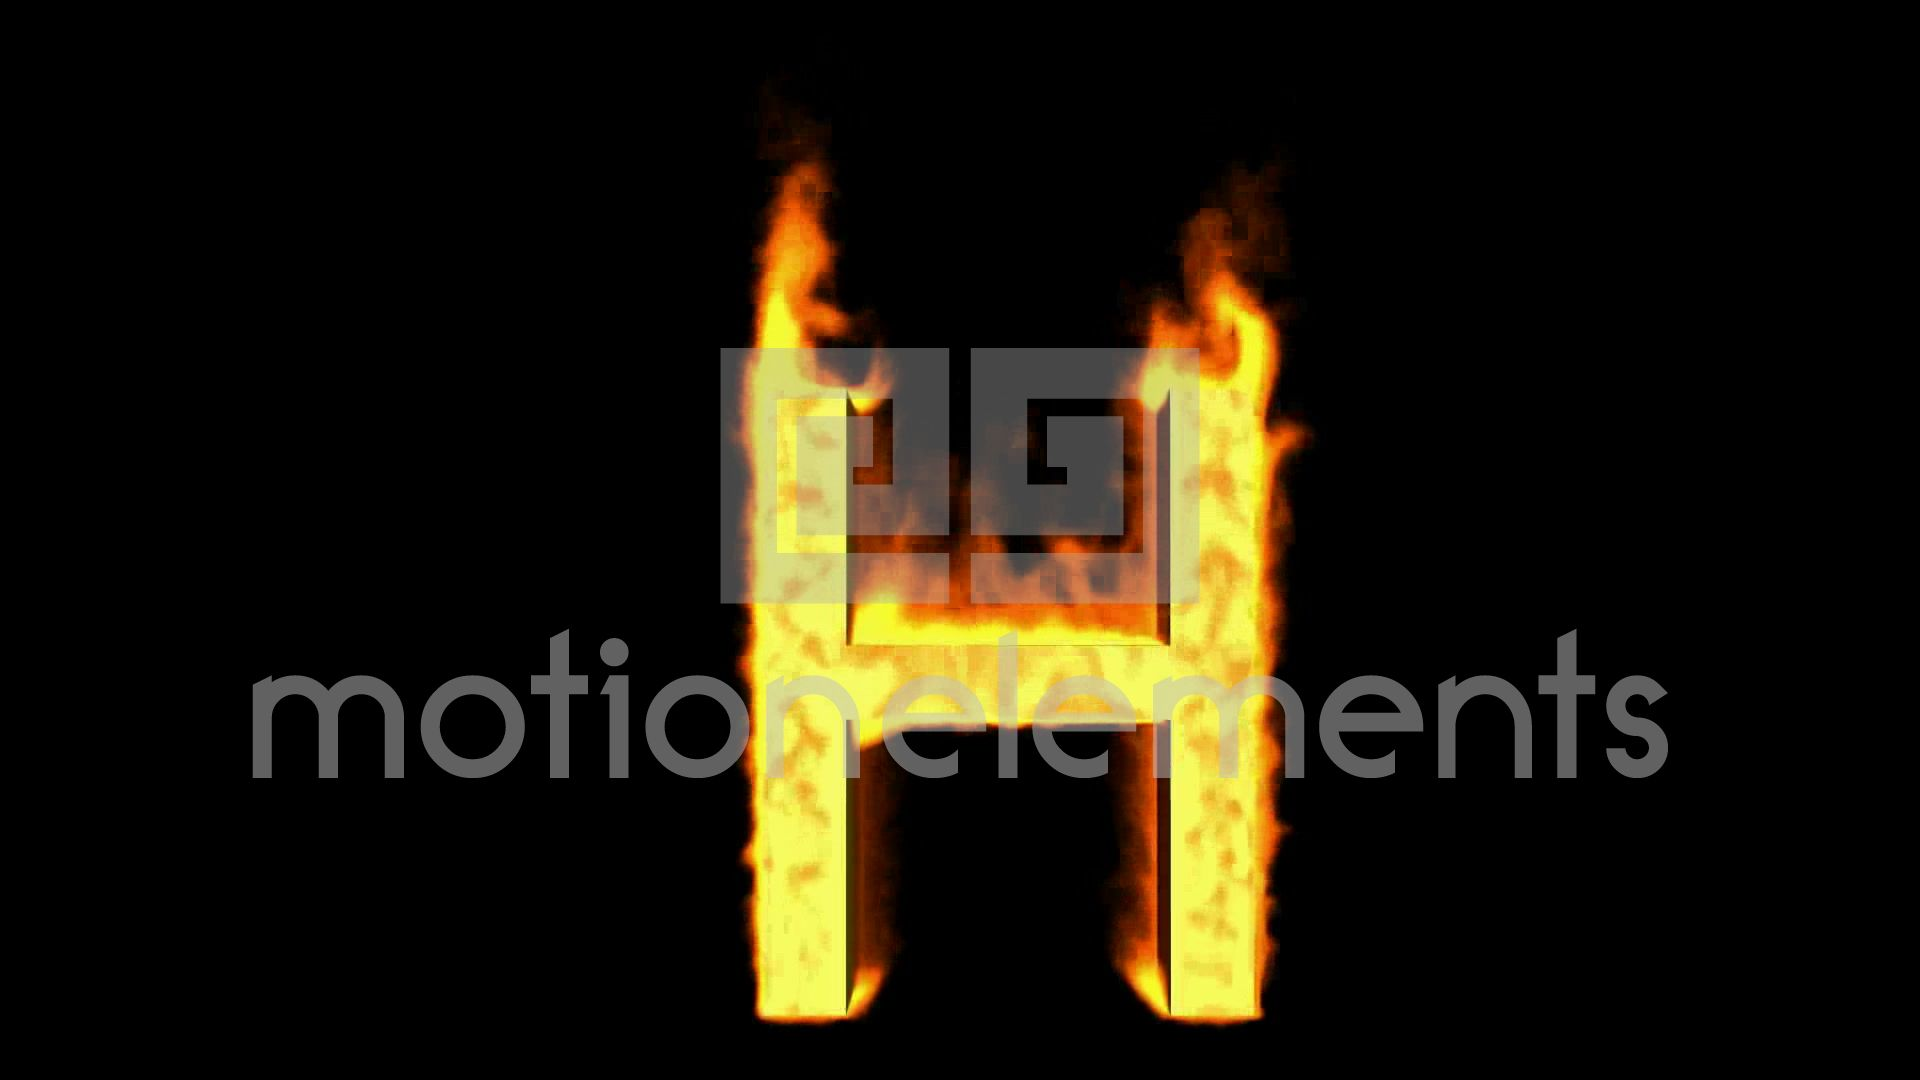 H Letter In Fire Hd Frame Still  Fire letter H